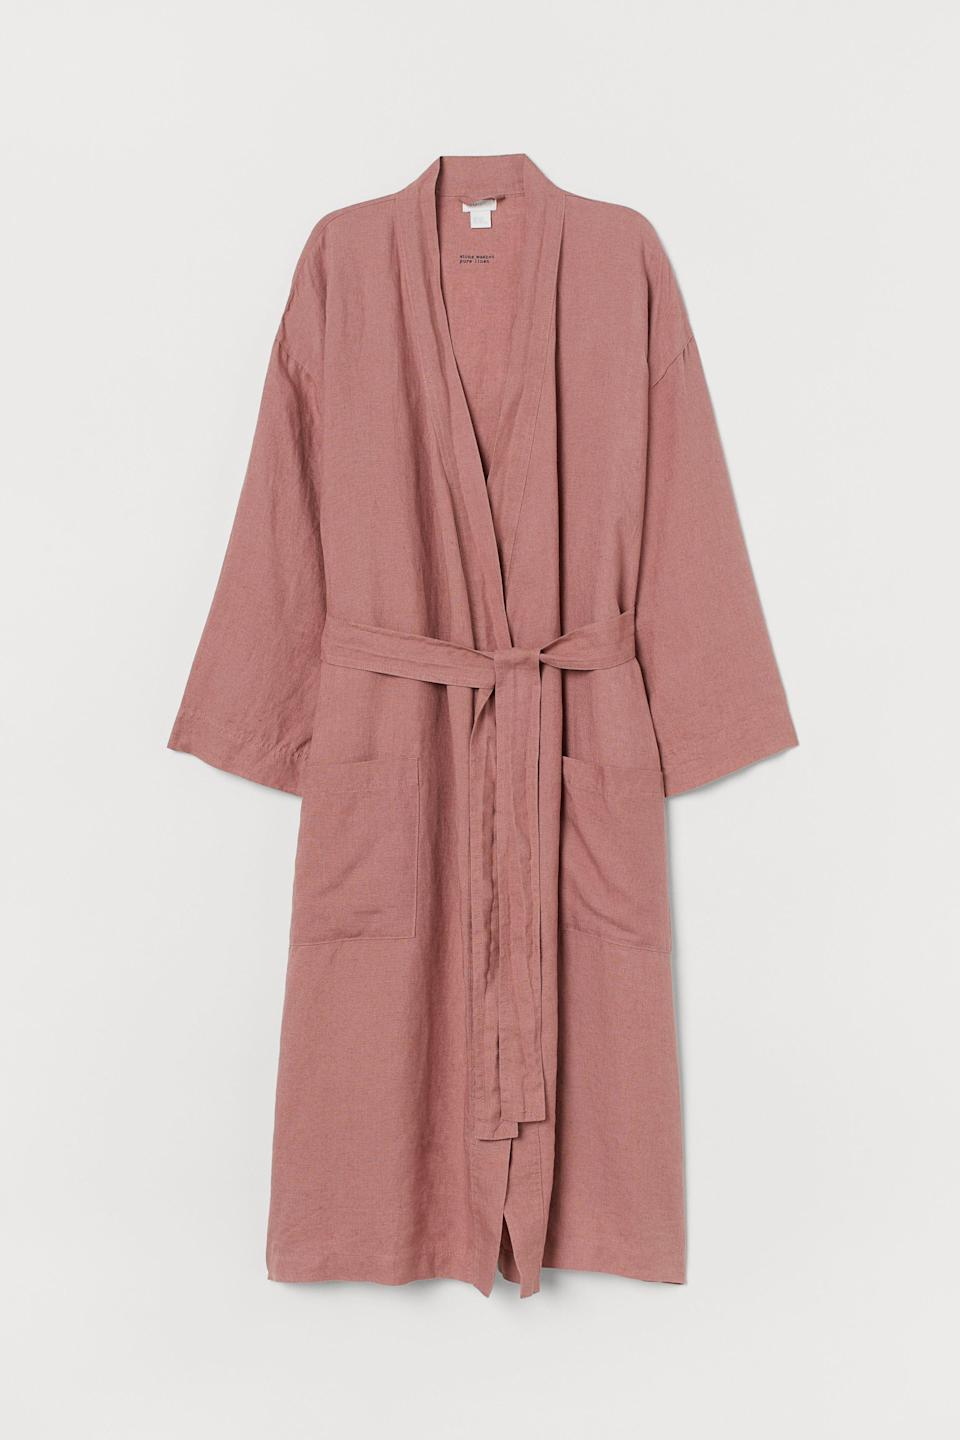 """<h3><a href=""""https://www2.hm.com/en_us/productpage.0107727054.html"""" rel=""""nofollow noopener"""" target=""""_blank"""" data-ylk=""""slk:H&M Home Washed Linen Bathrobe"""" class=""""link rapid-noclick-resp"""">H&M Home Washed Linen Bathrobe</a></h3><br>The dusty rose washed-linen robe of your mom's dreams does exist IRL — and you can snag it on H&M Home for under $50. <br><br><strong>H&M Home</strong> Washed Linen Bathrobe, $, available at <a href=""""https://go.skimresources.com/?id=30283X879131&url=https%3A%2F%2Fwww2.hm.com%2Fen_us%2Fproductpage.0107727054.html"""" rel=""""nofollow noopener"""" target=""""_blank"""" data-ylk=""""slk:H&M Home"""" class=""""link rapid-noclick-resp"""">H&M Home</a>"""